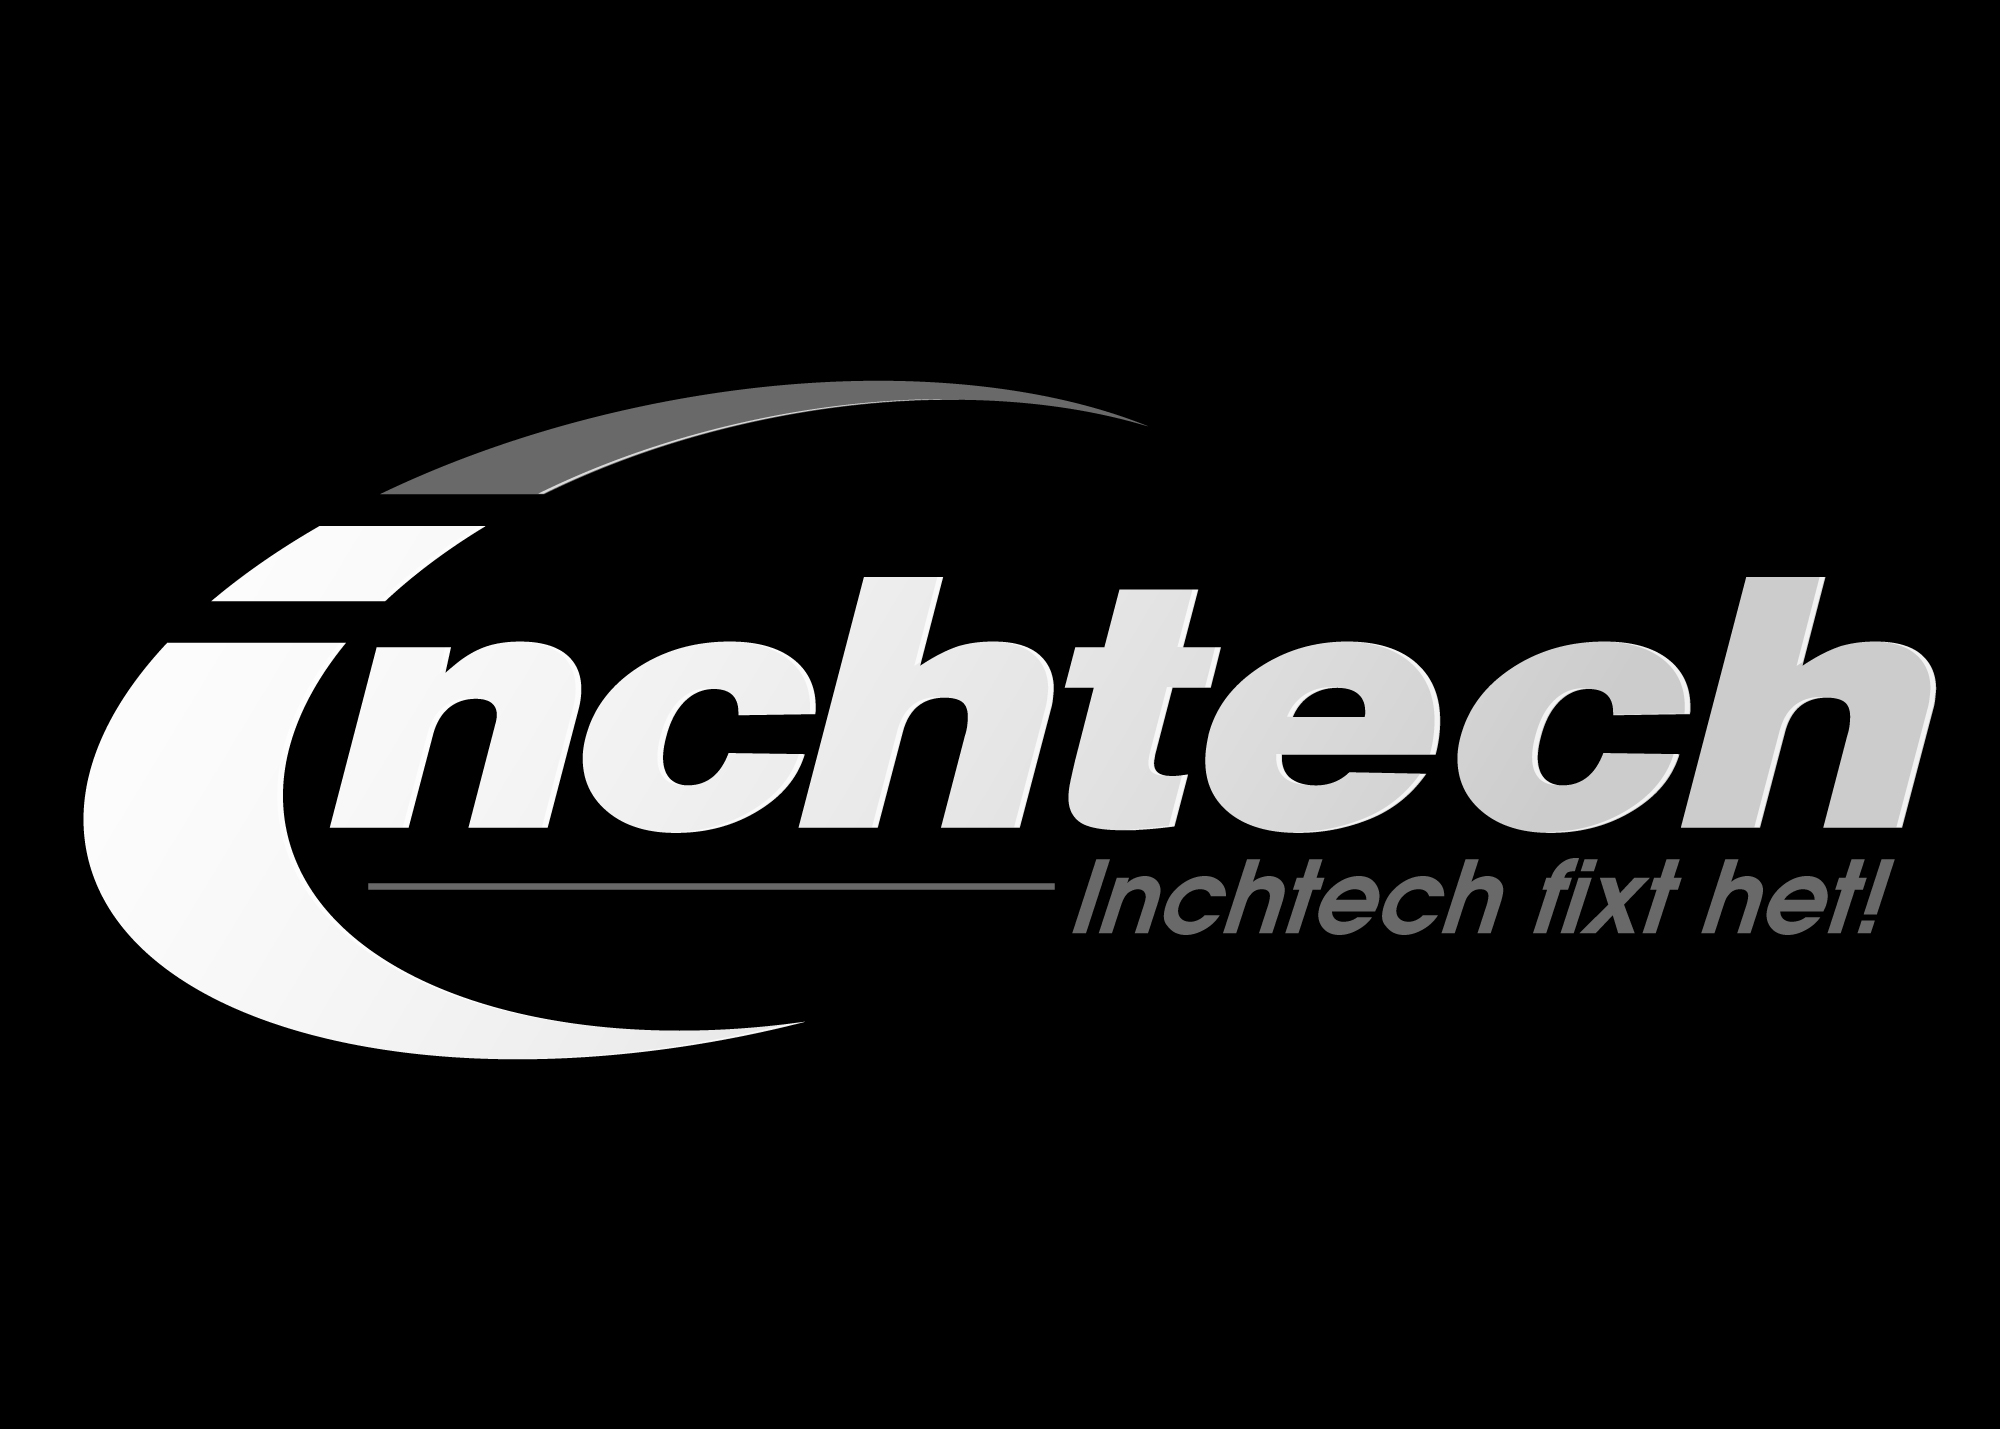 Inchtech inverted